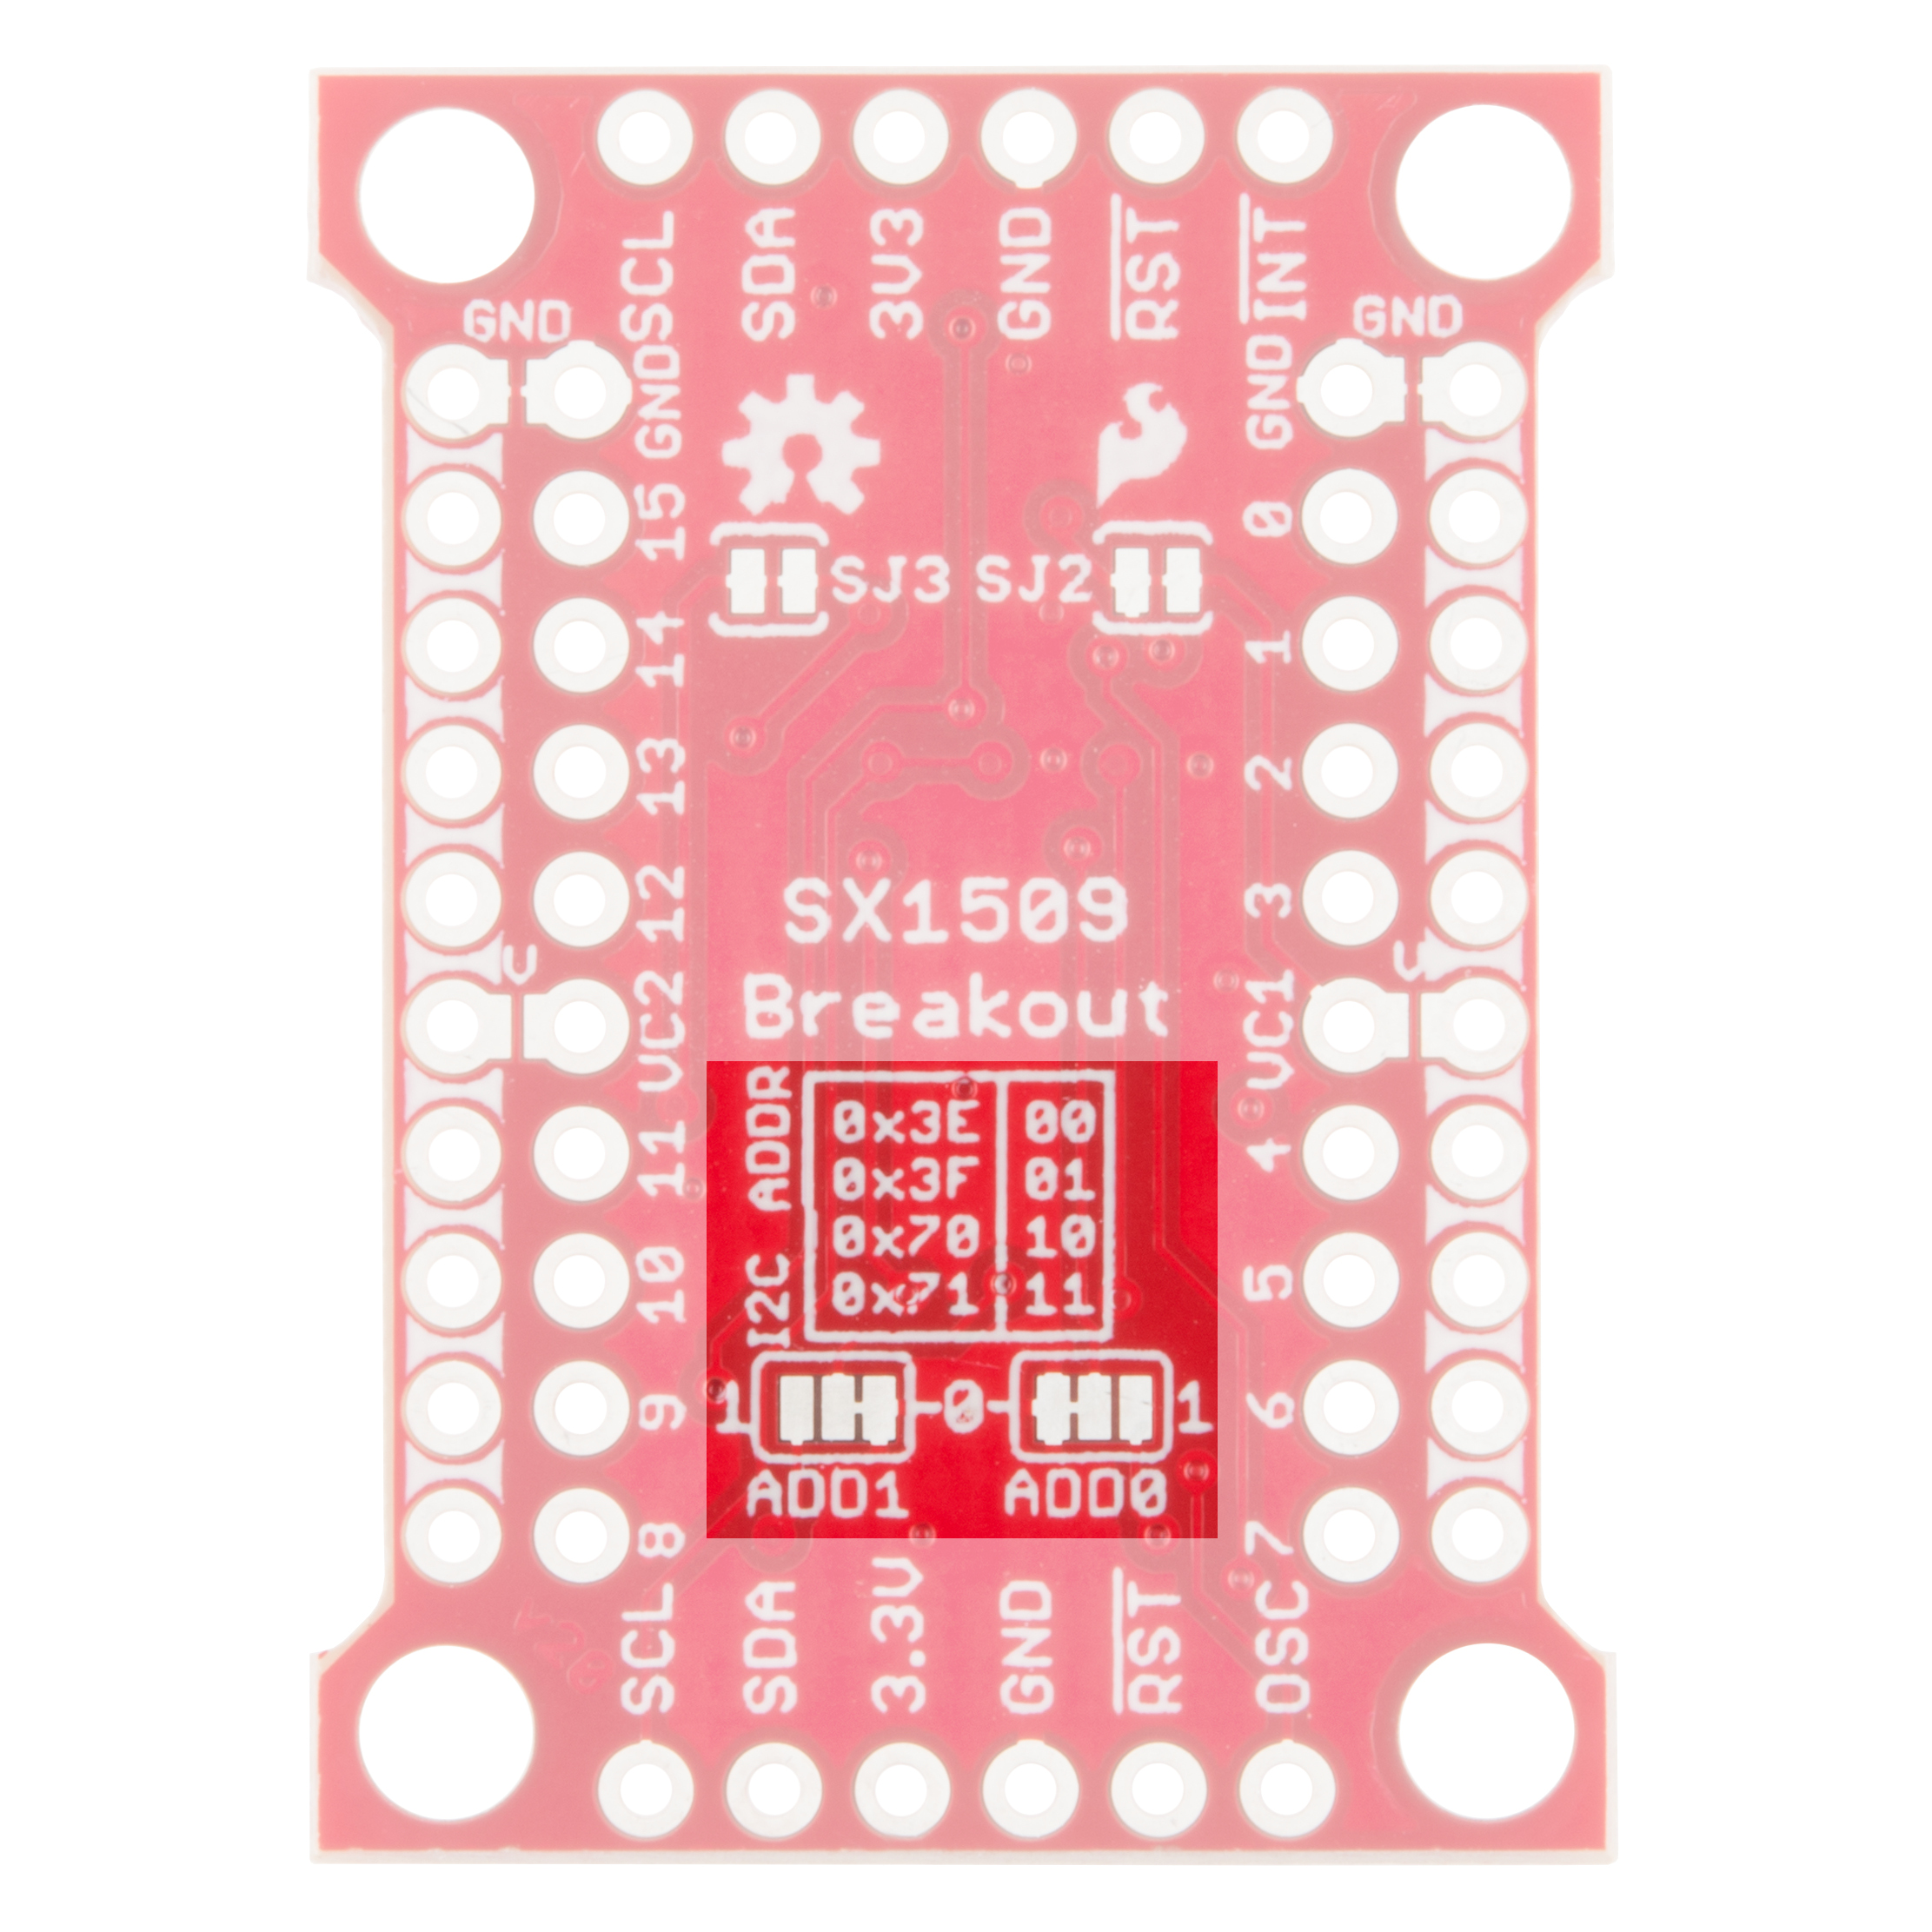 Wiringpi Arduino I2c Sx1509 I O Expander Breakout Hookup Guide Address Select Jumpers